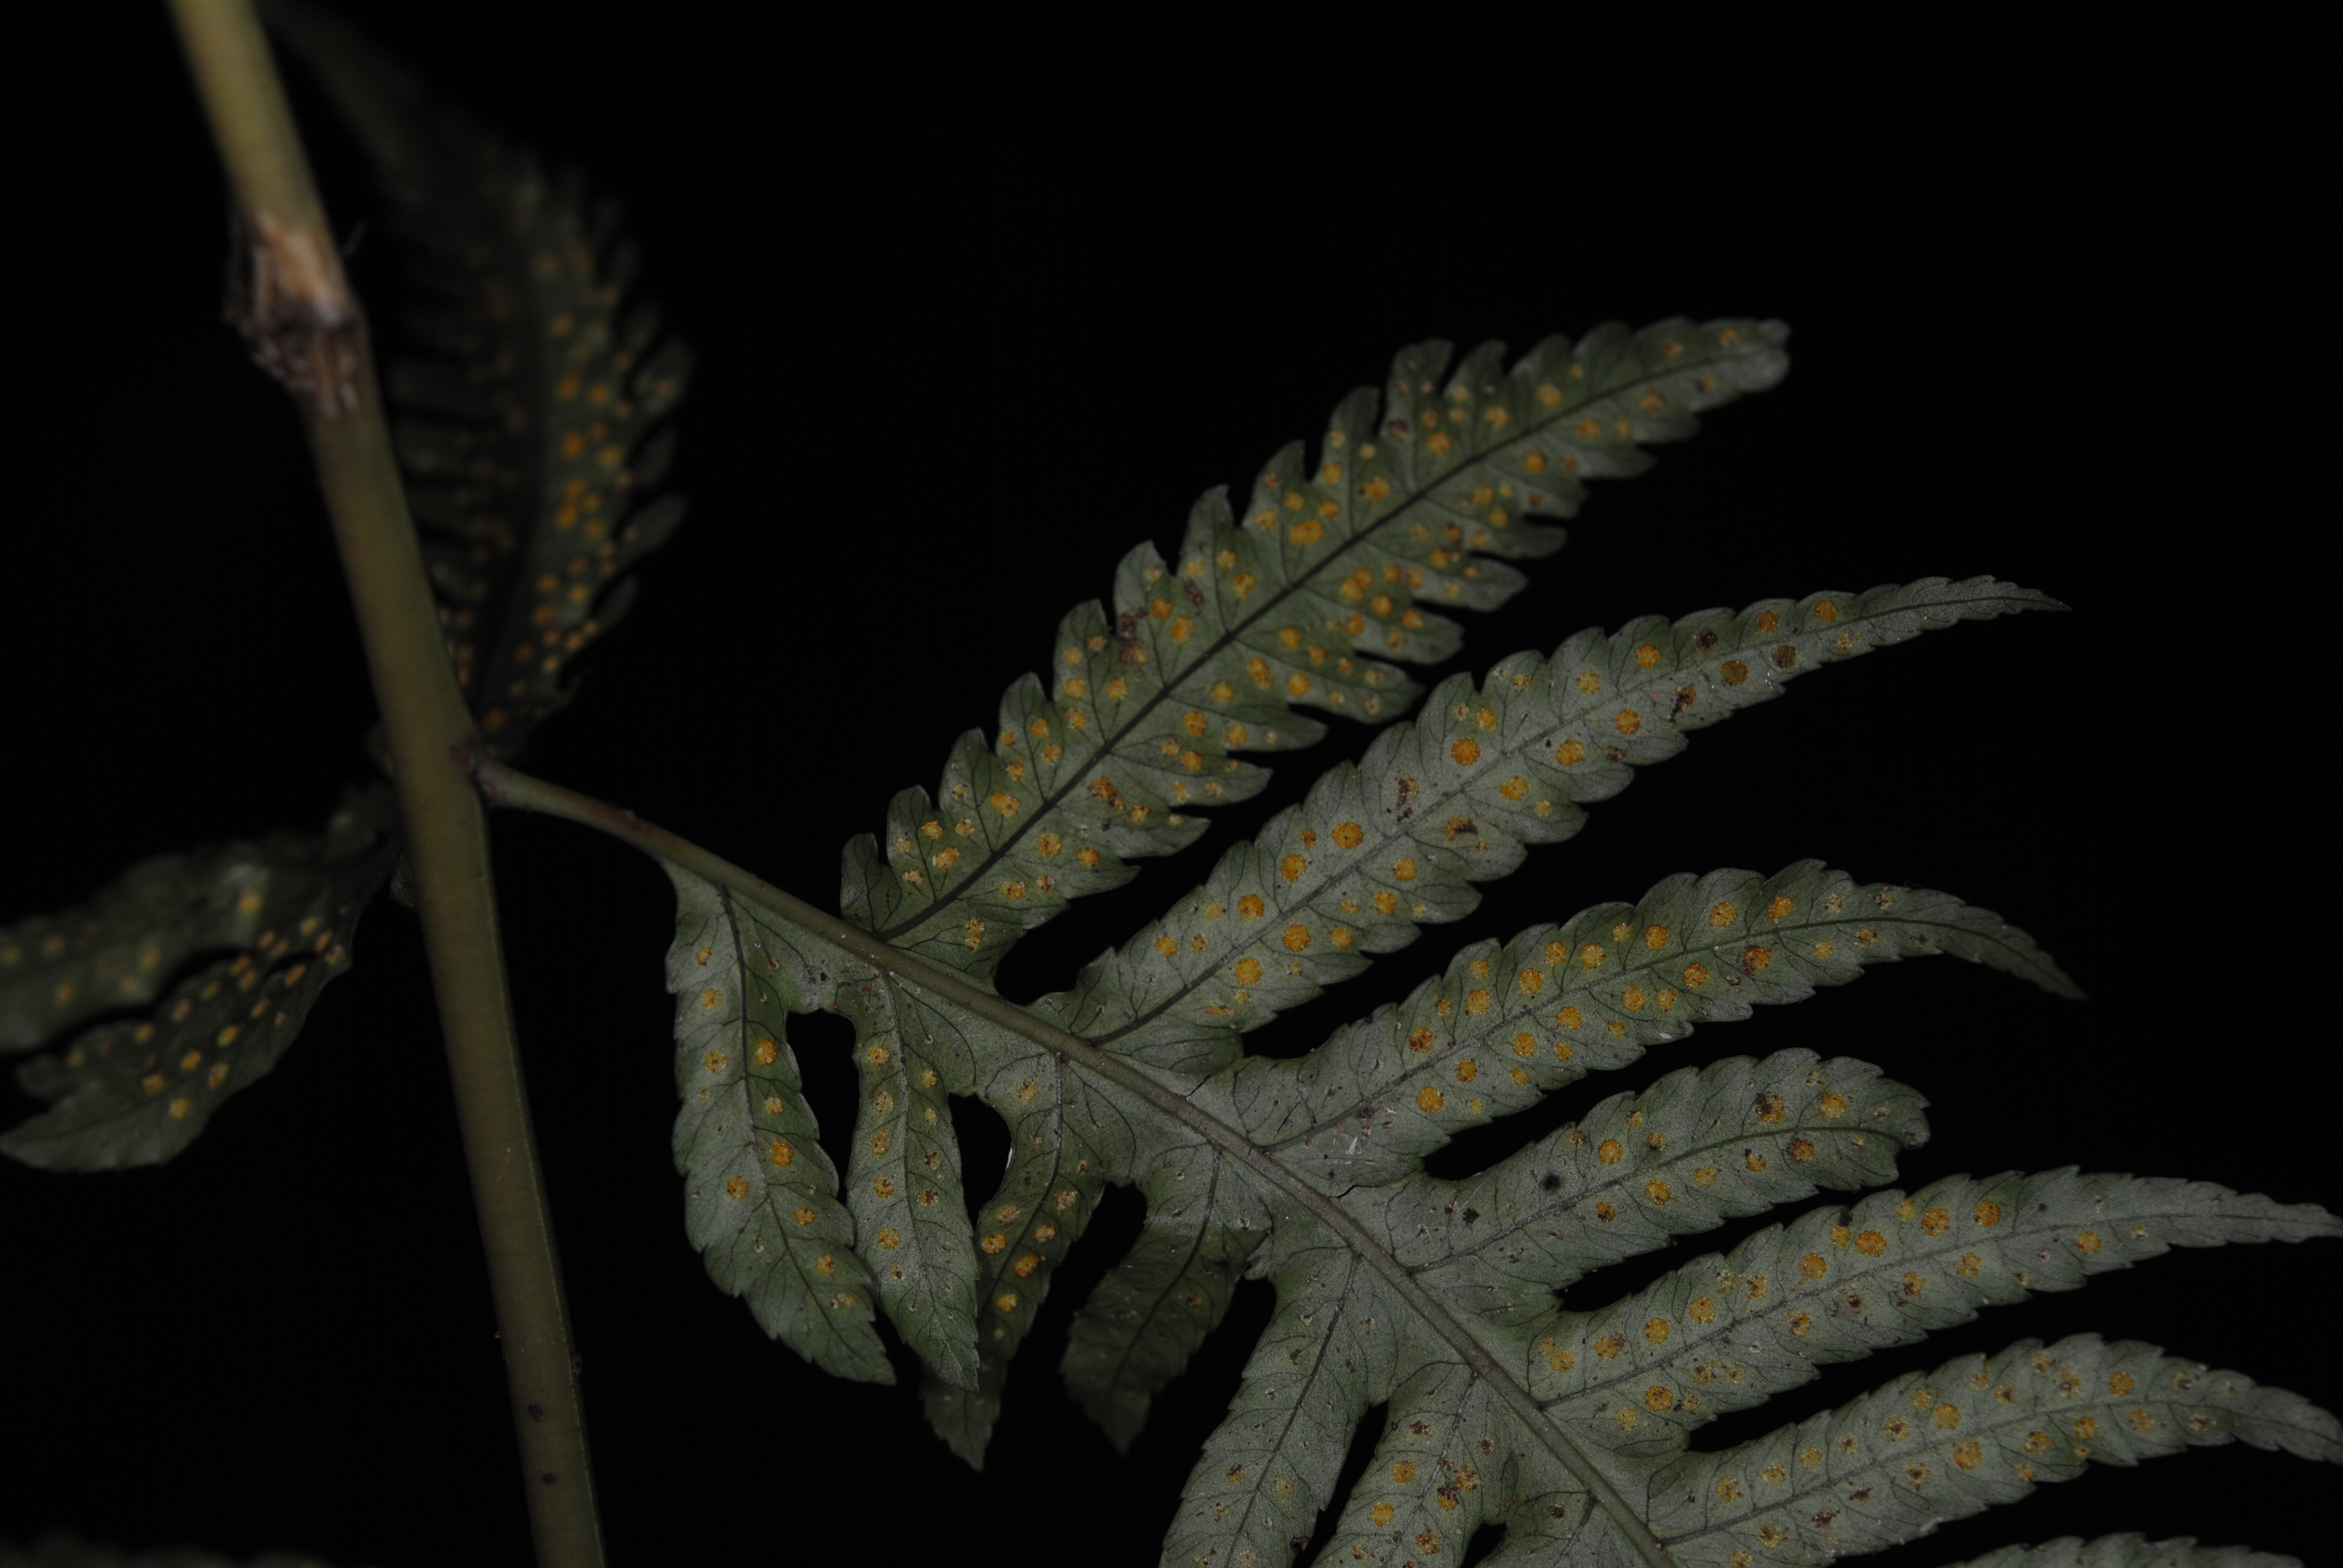 Pteridrys microthecia